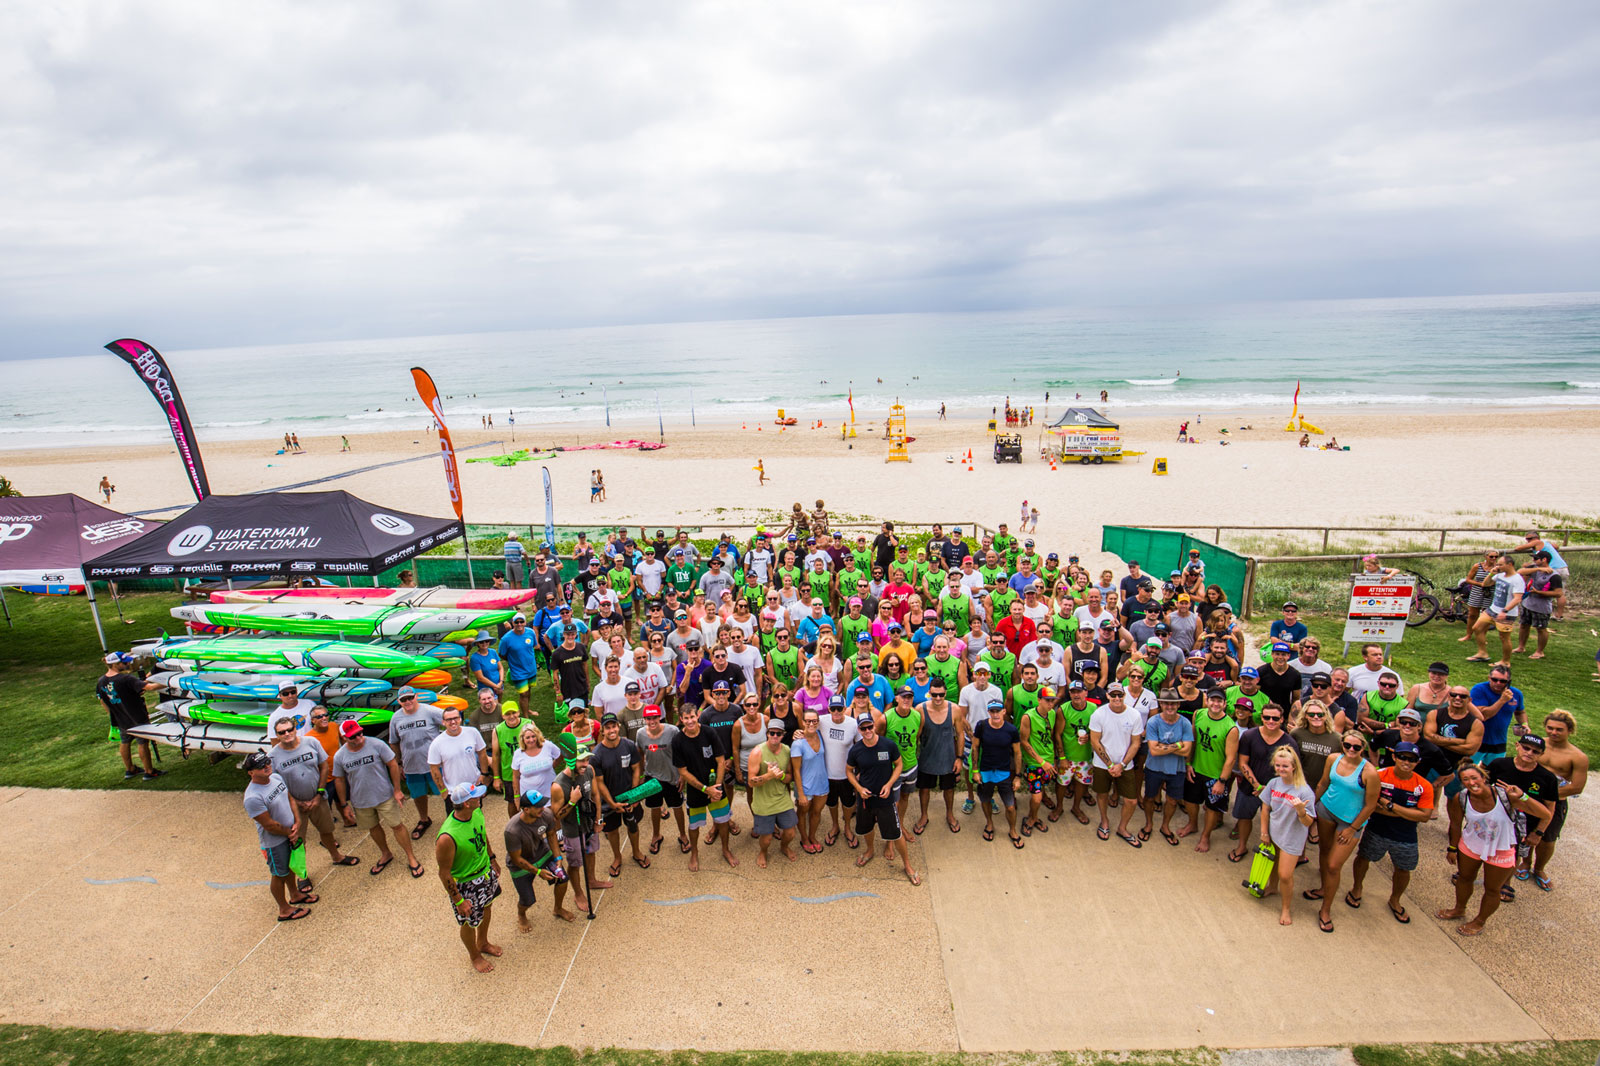 Starboard-12-Towers-2018-SUP-race-team-shot